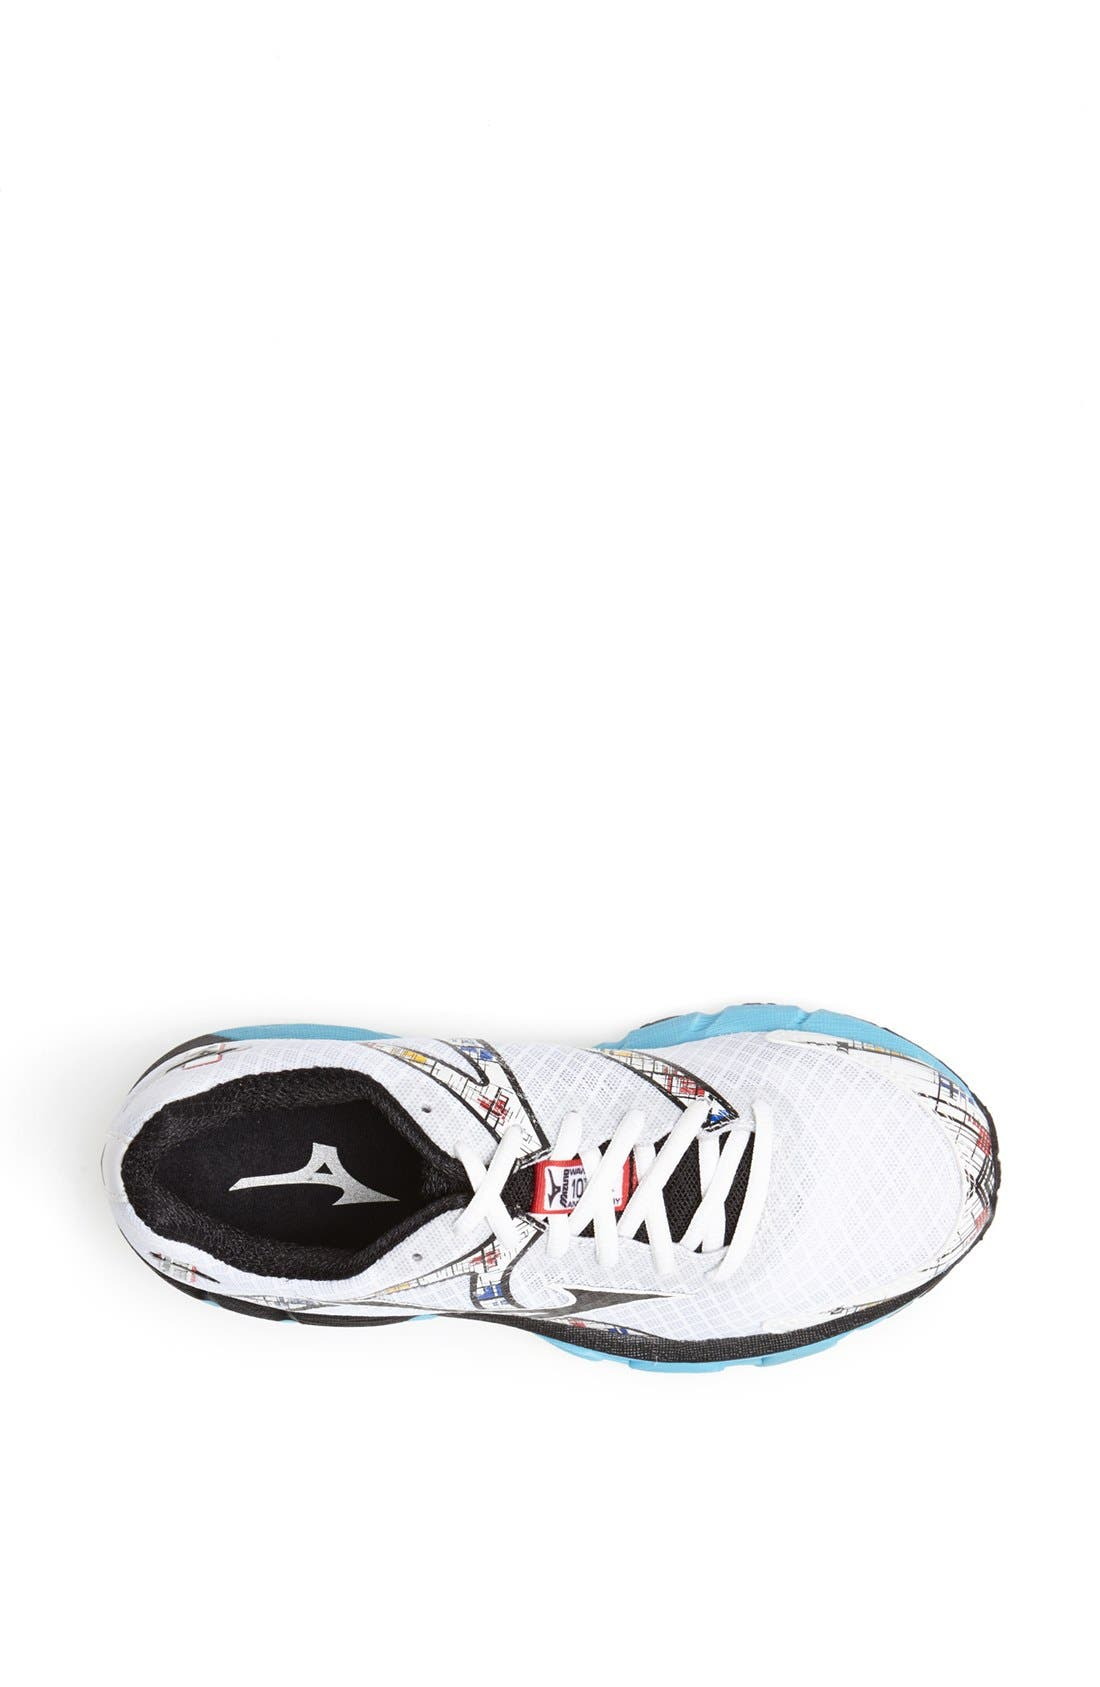 Alternate Image 3  - Mizuno 'Wave Inspire 10th Anniversary' Running Shoe (Women)